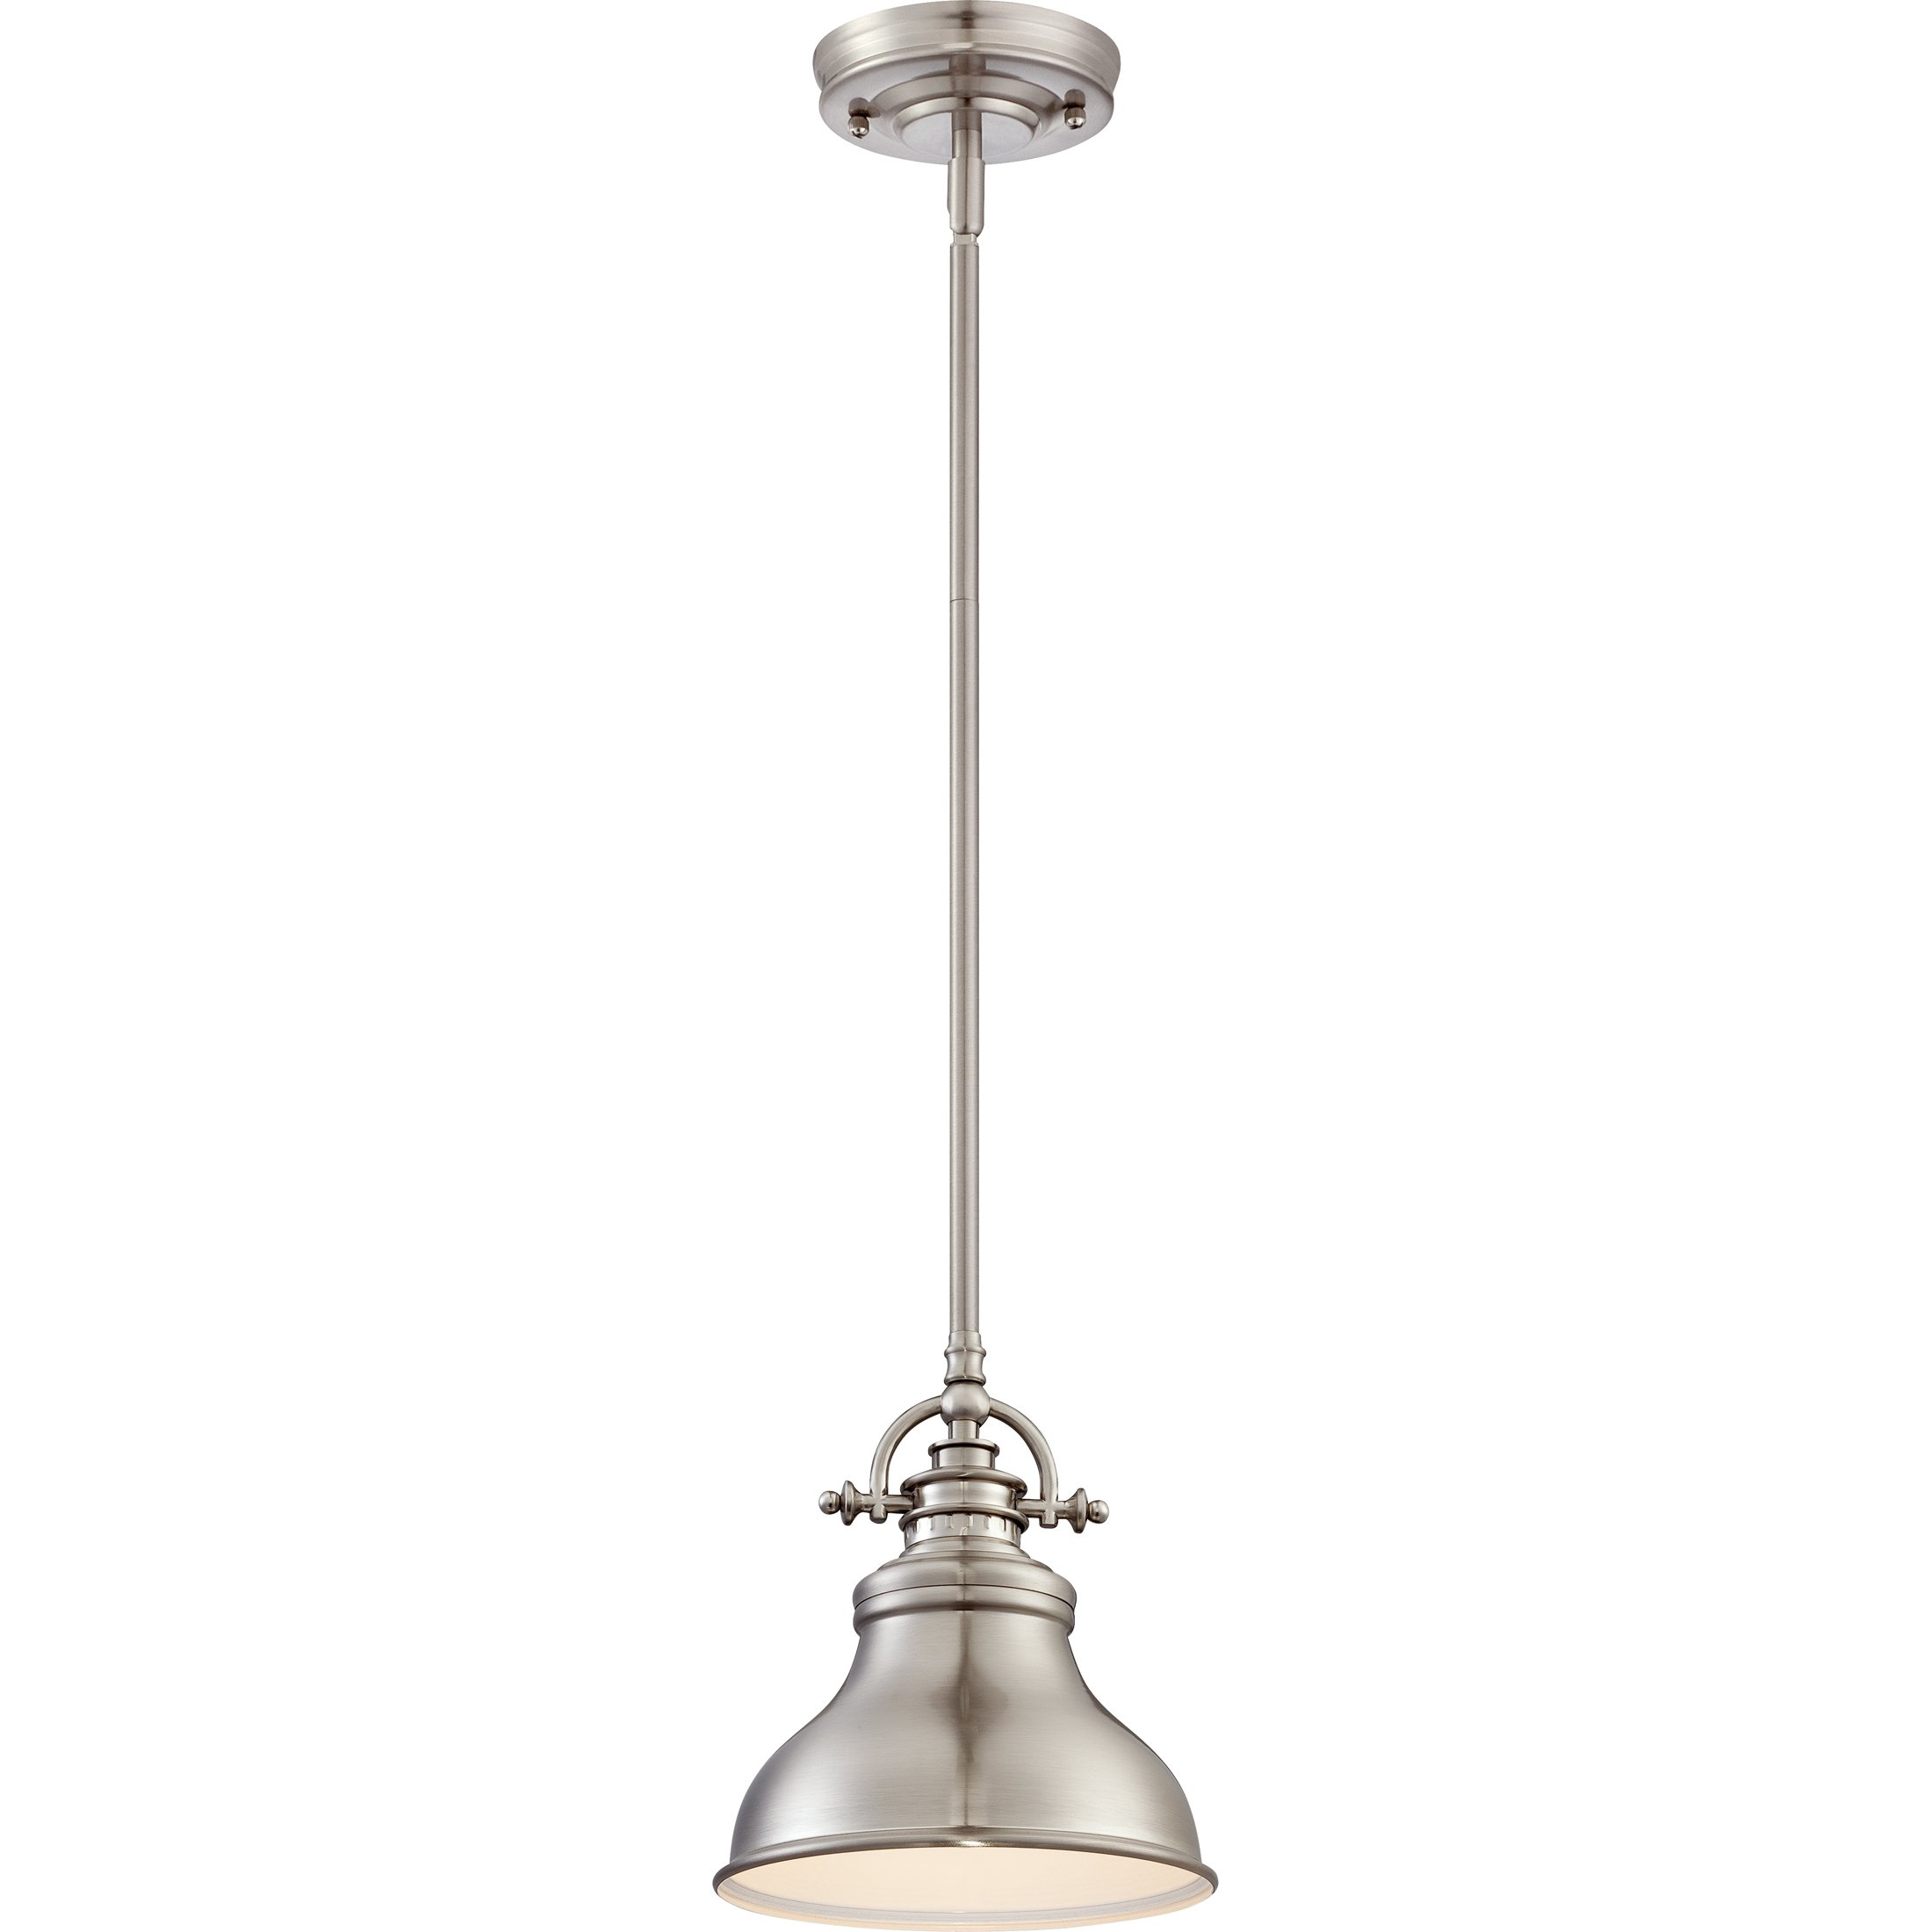 Quoizel ER1508BN 1-Light Emery Mini Pendant in Brushed Nickel